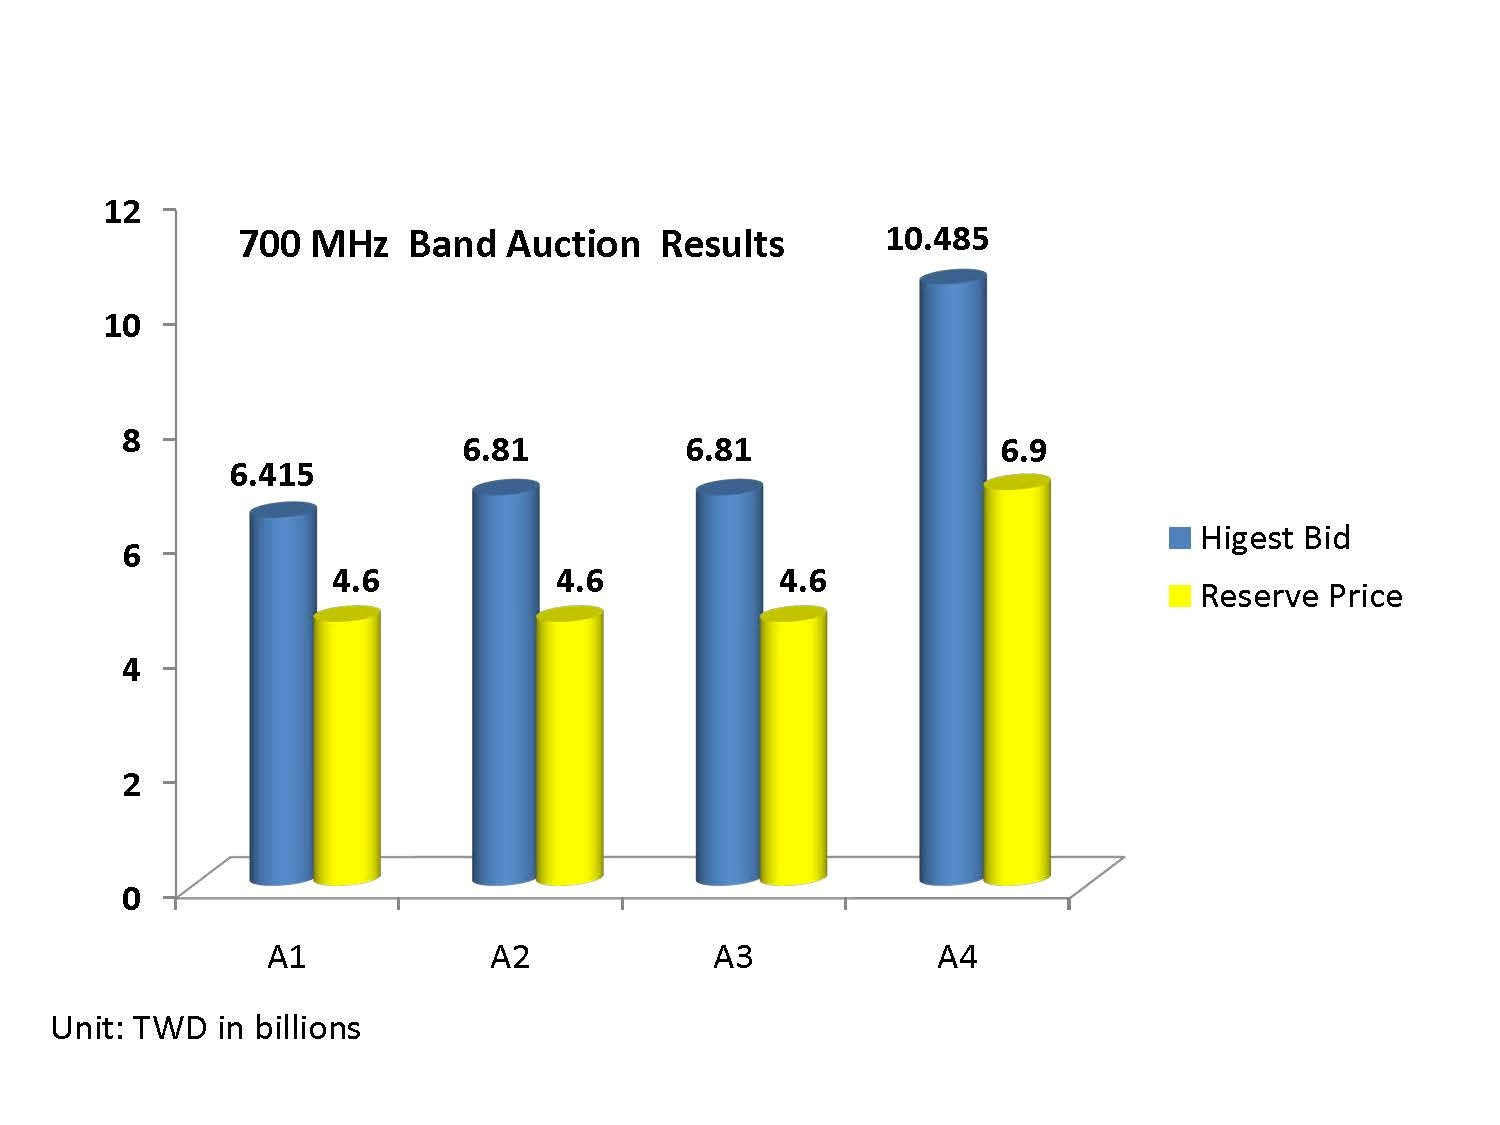 700 MHz Band Auction Results